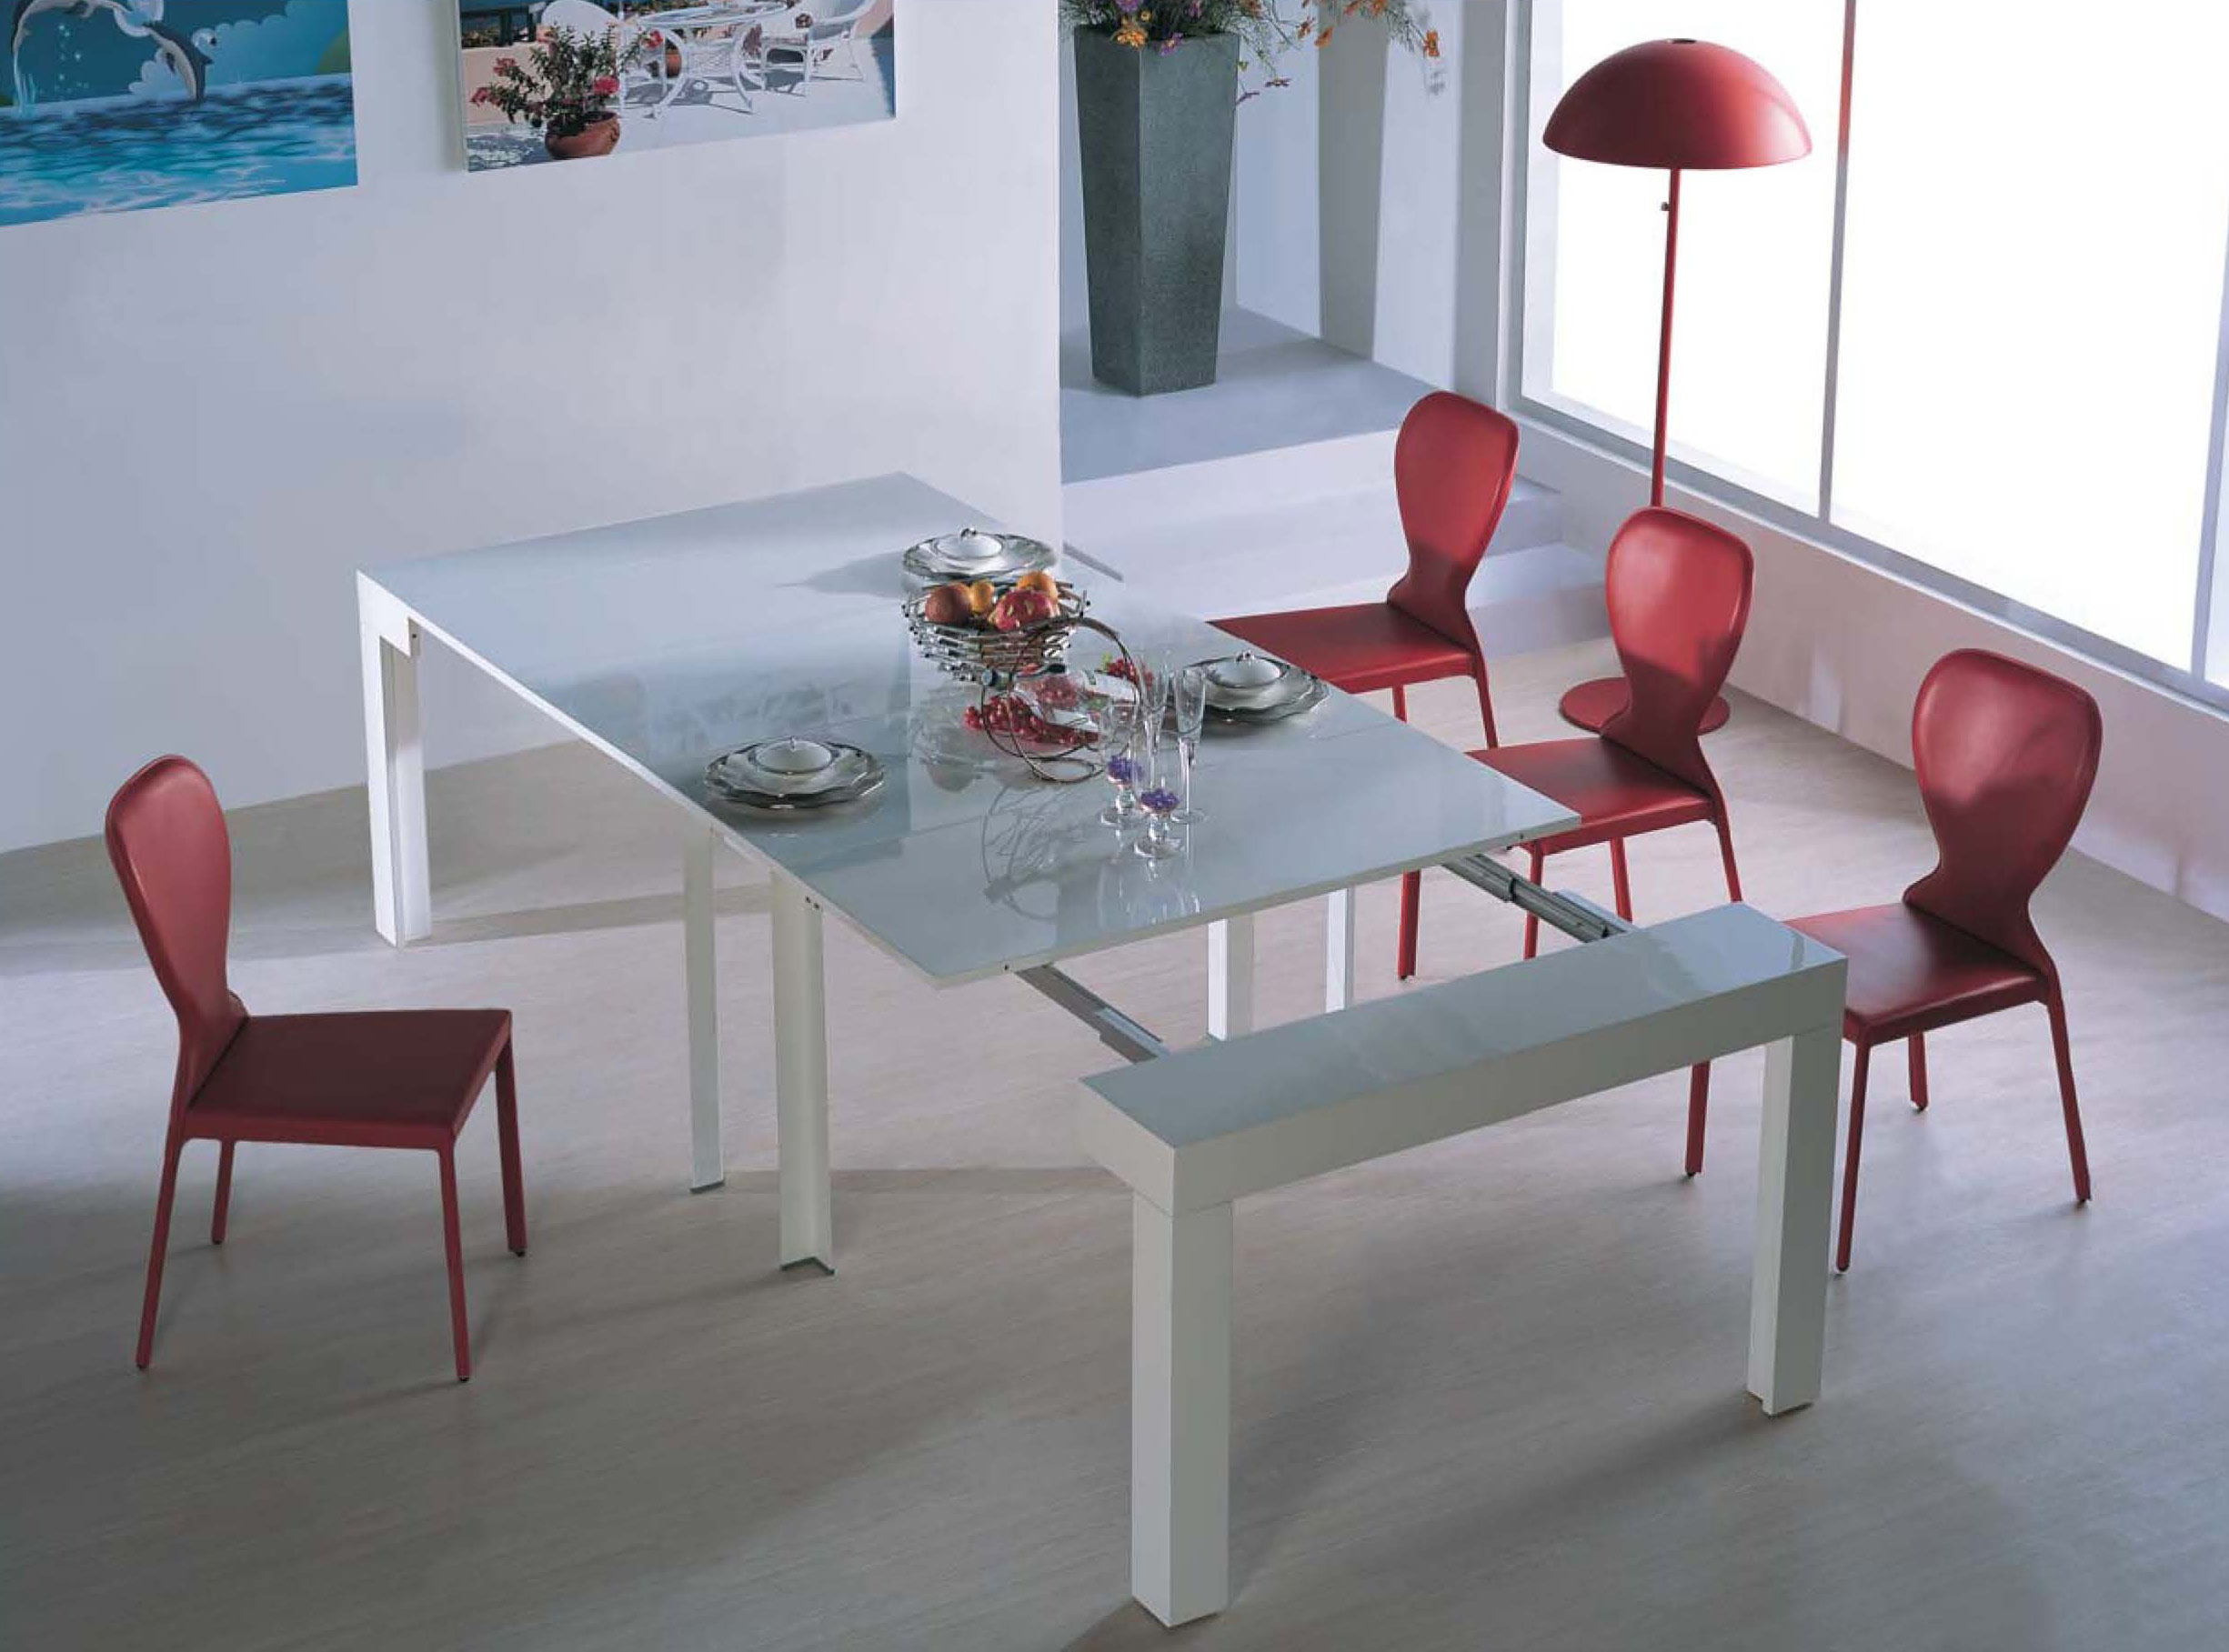 Expanding Tables for Cramped Dining Areas | Expand Furniture